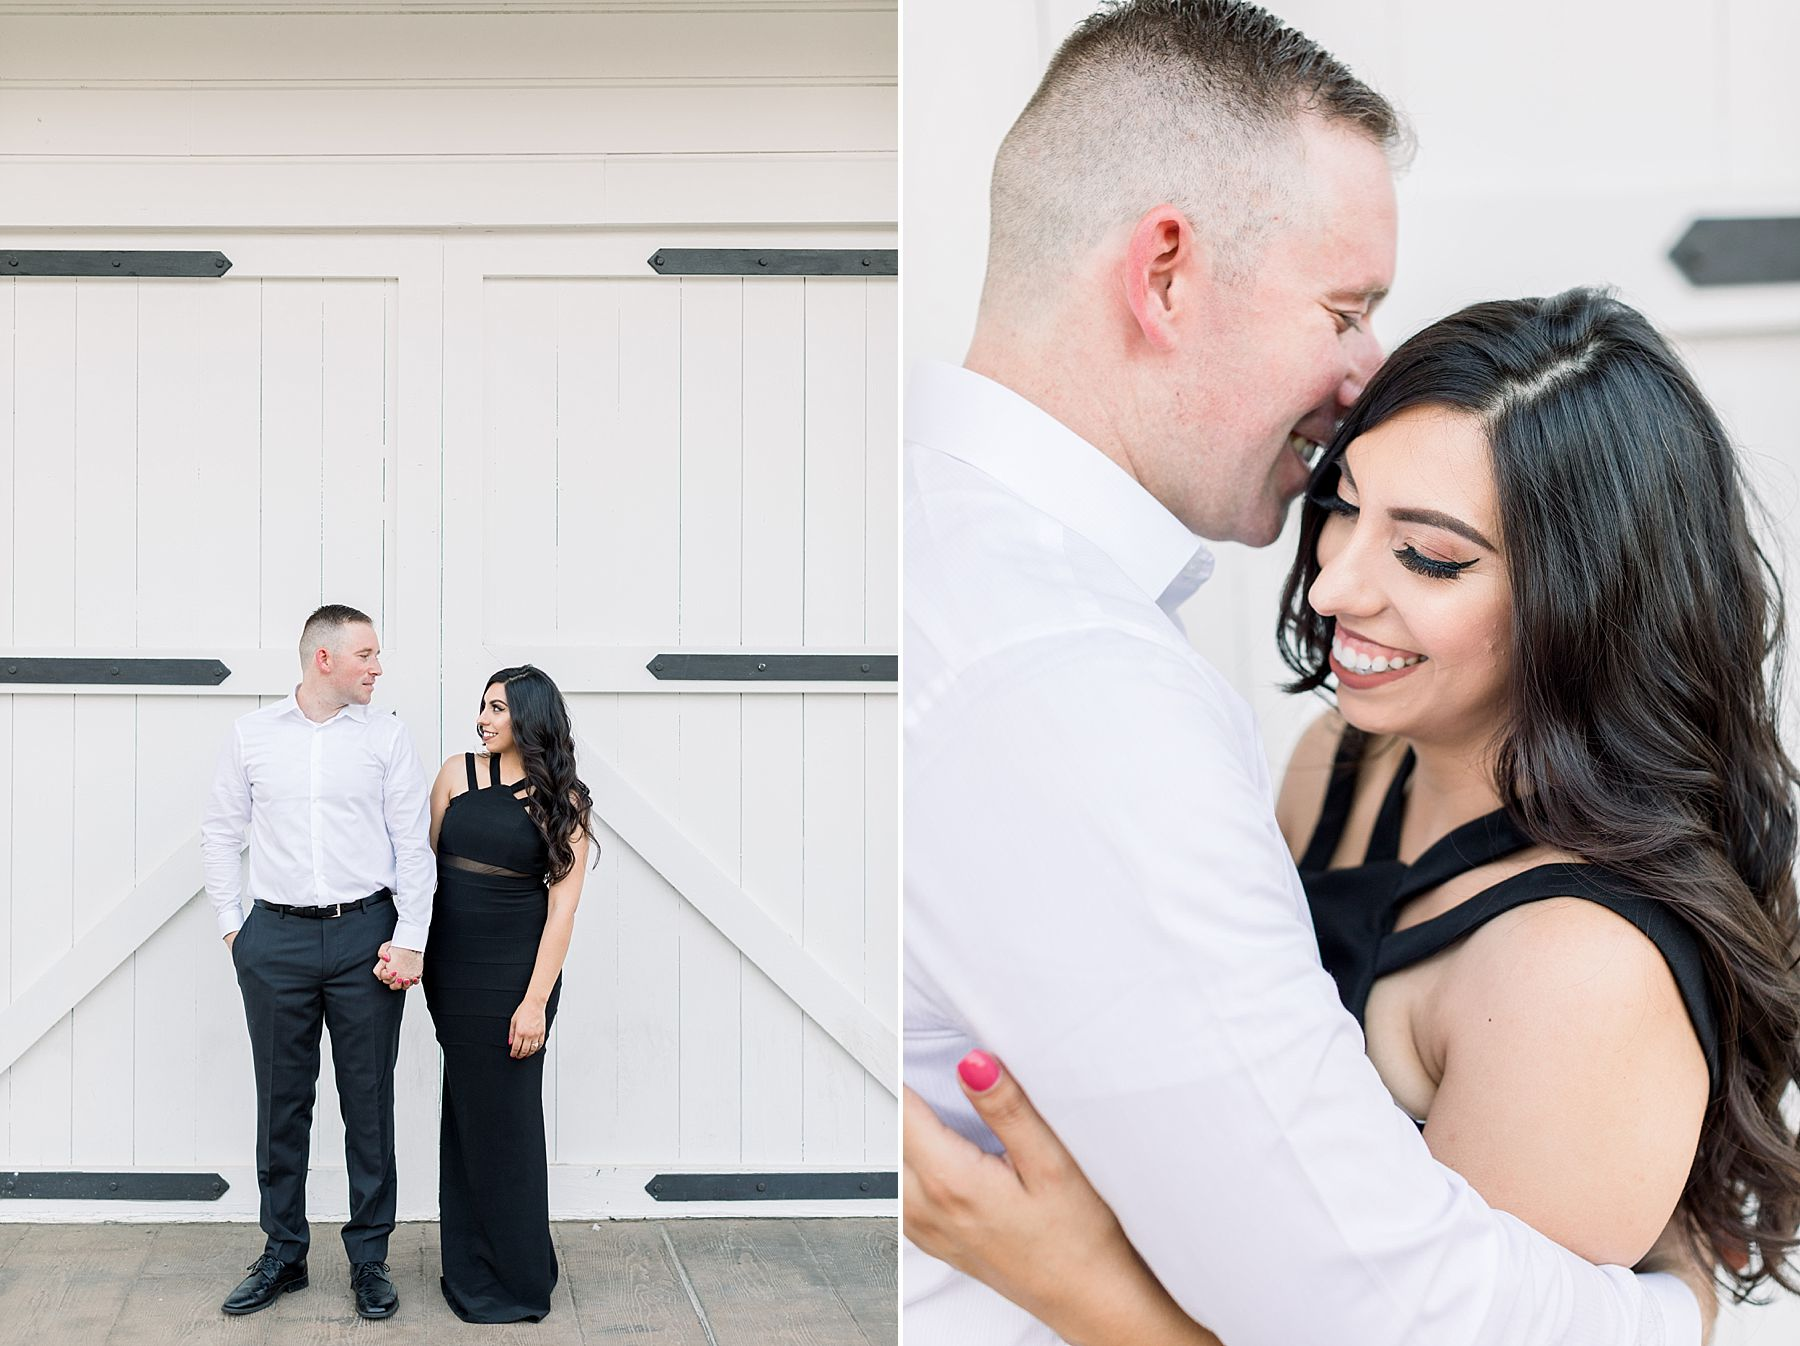 Old Sacramento Engagement Session - Downtown Sacramento Engagement Session - Black Tie Engagement Photos - Ashley Baumgartner - Sacramento Wedding Photographer_0002.jpg